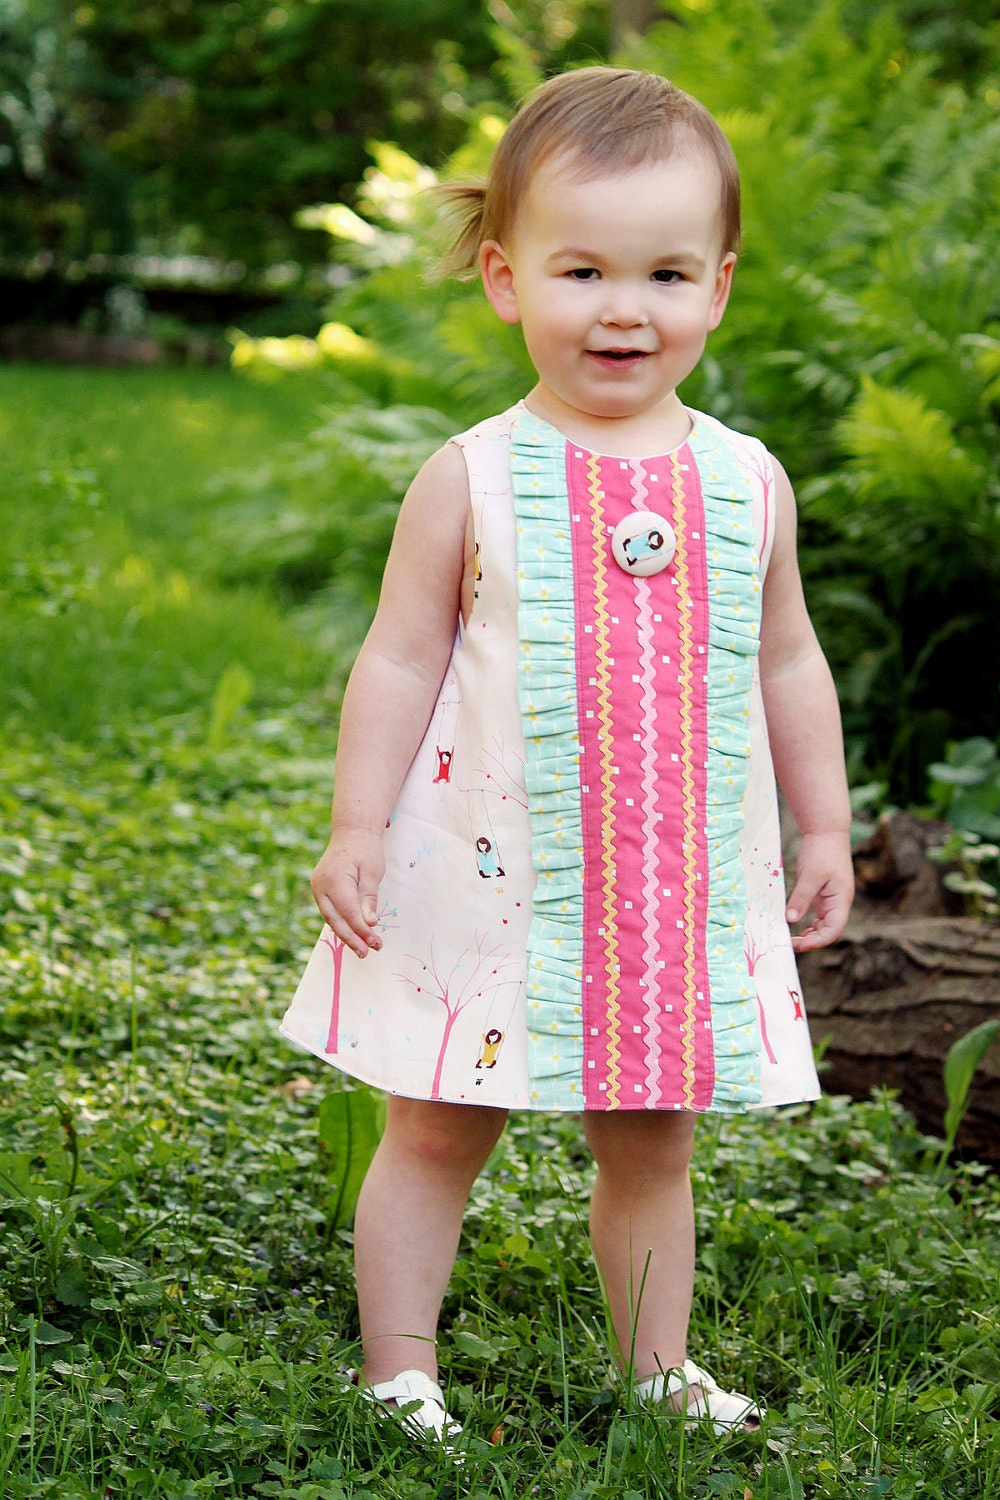 PRINTED Sewing Pattern: Janey Jumper A-Line Dress - Size 6 Month through 10 Years